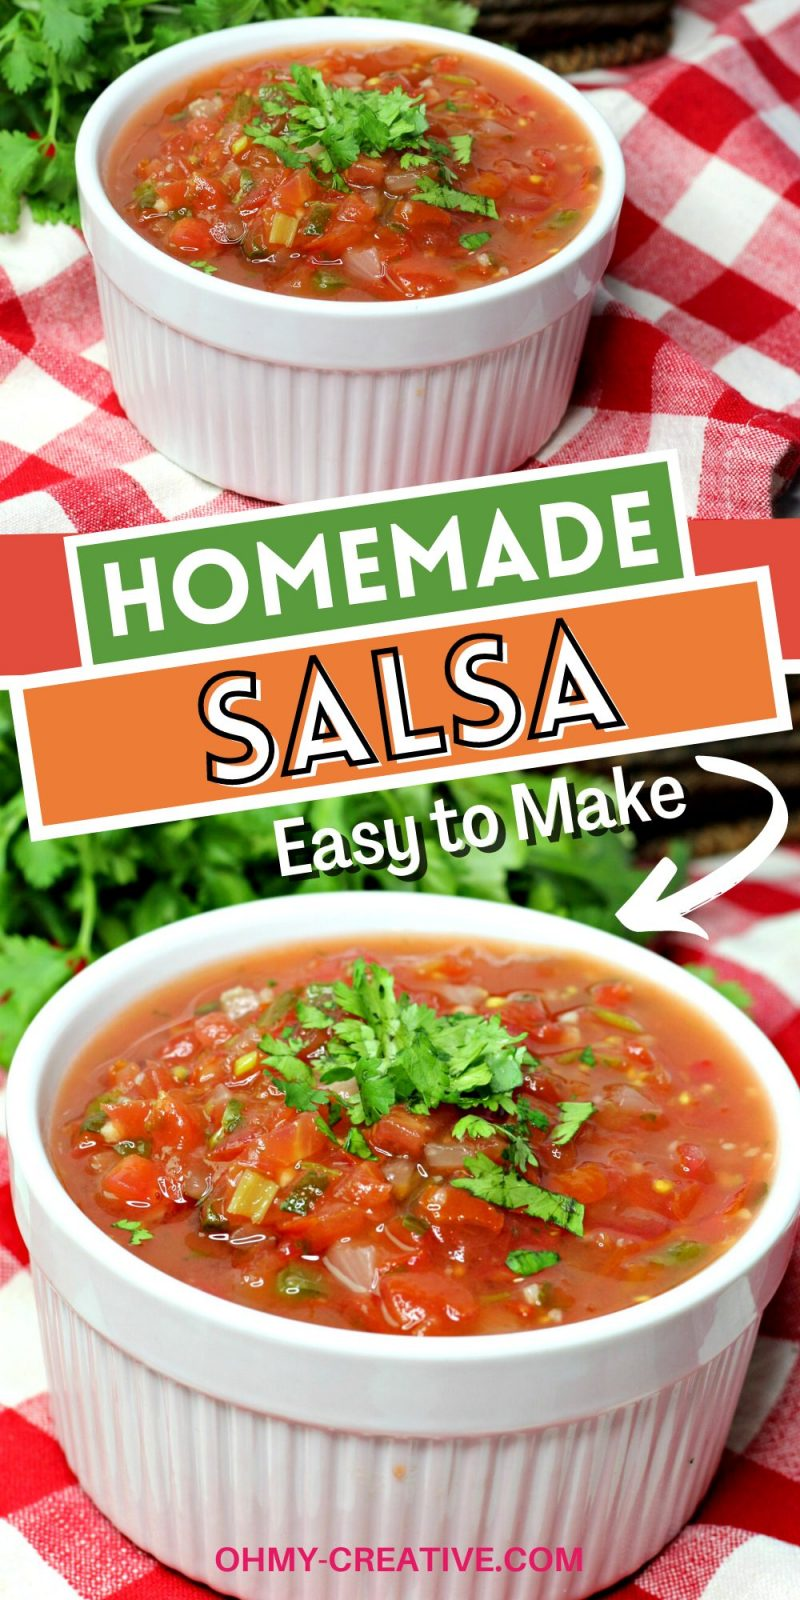 This easy homemade salsa recipe is served in a white bowl and is ready to serve with chips!